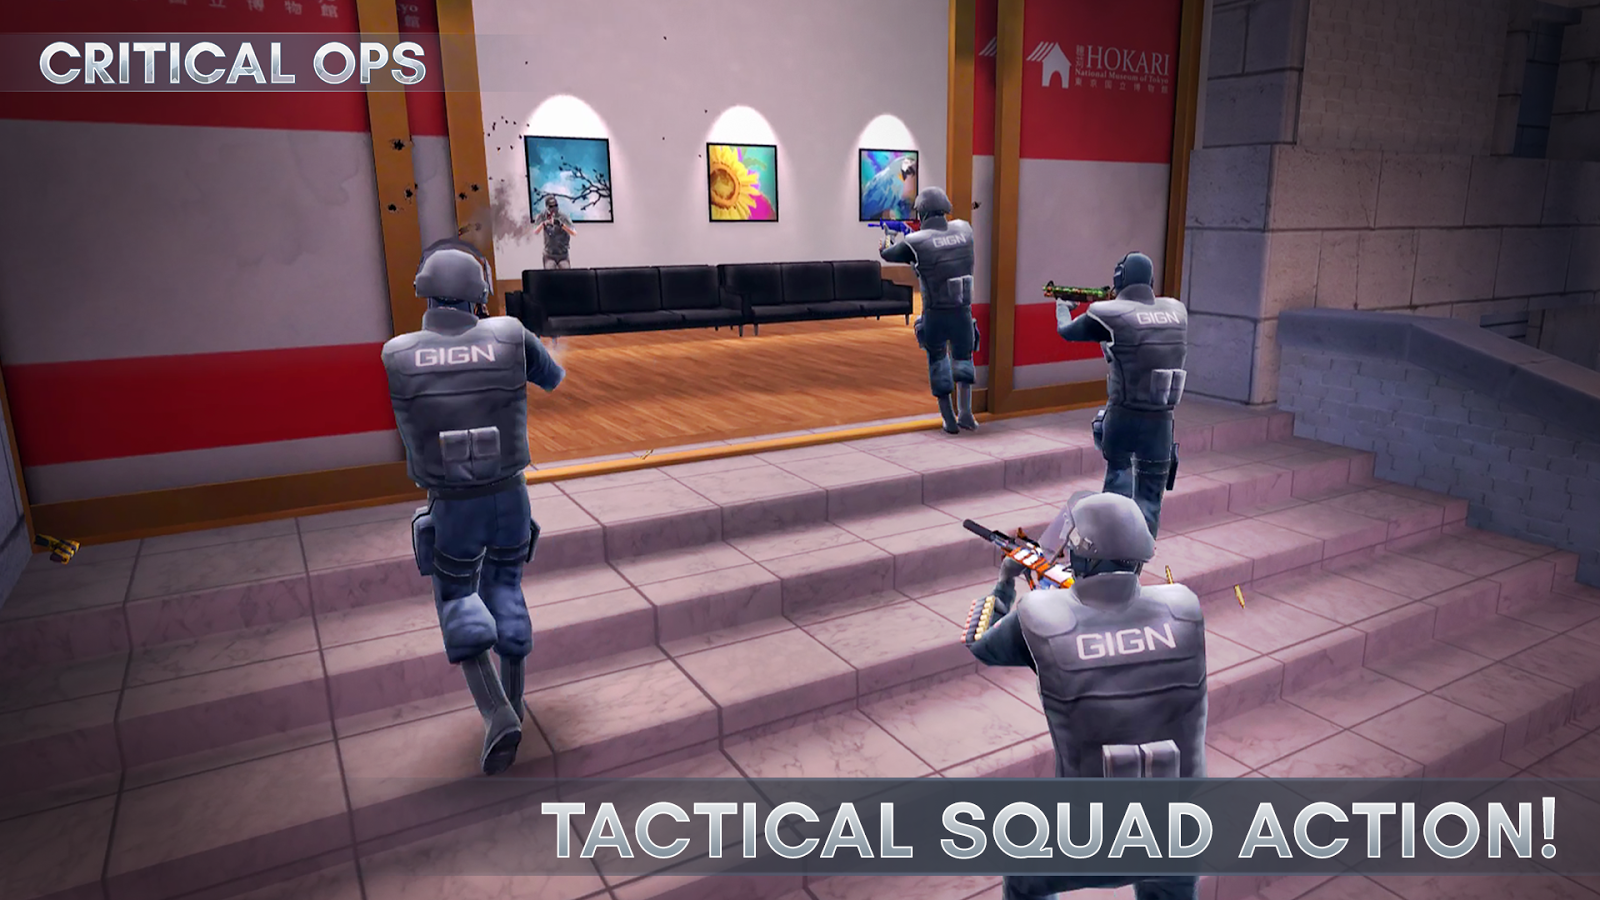 World Domination Game >> Critical Ops - Android Apps on Google Play